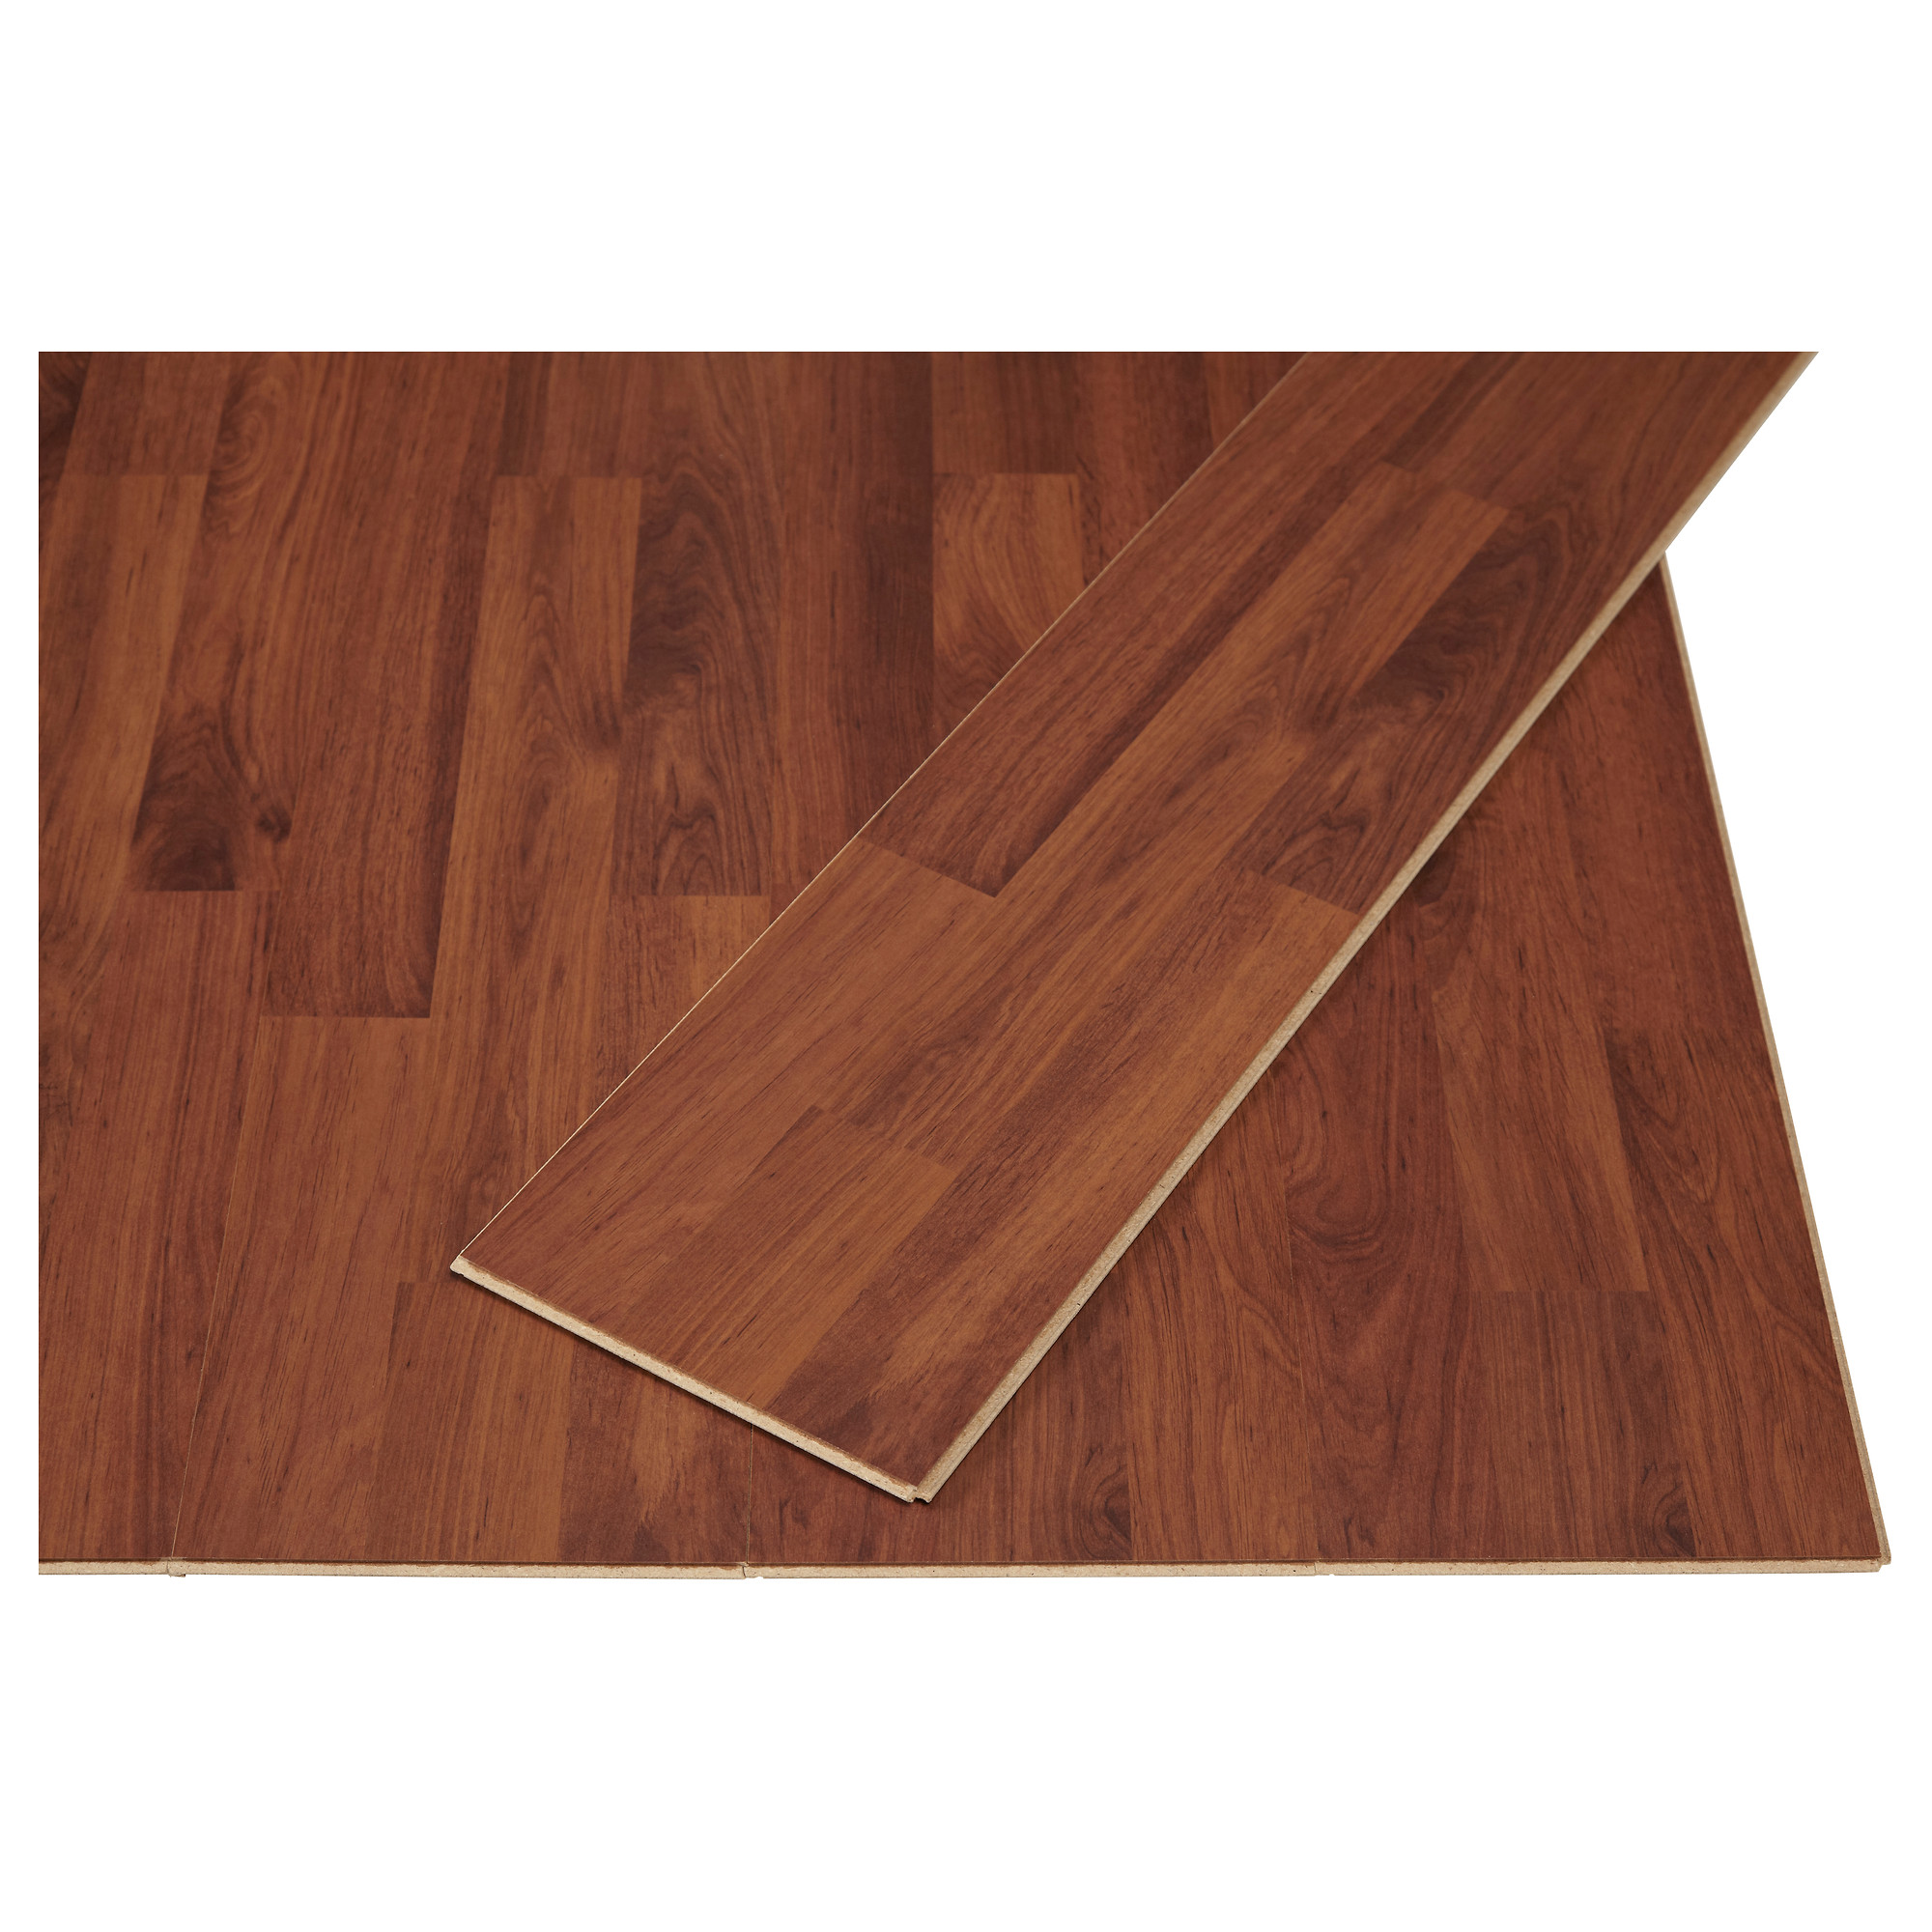 Laminate flooring different colors laminate flooring for Laminate flooring colors